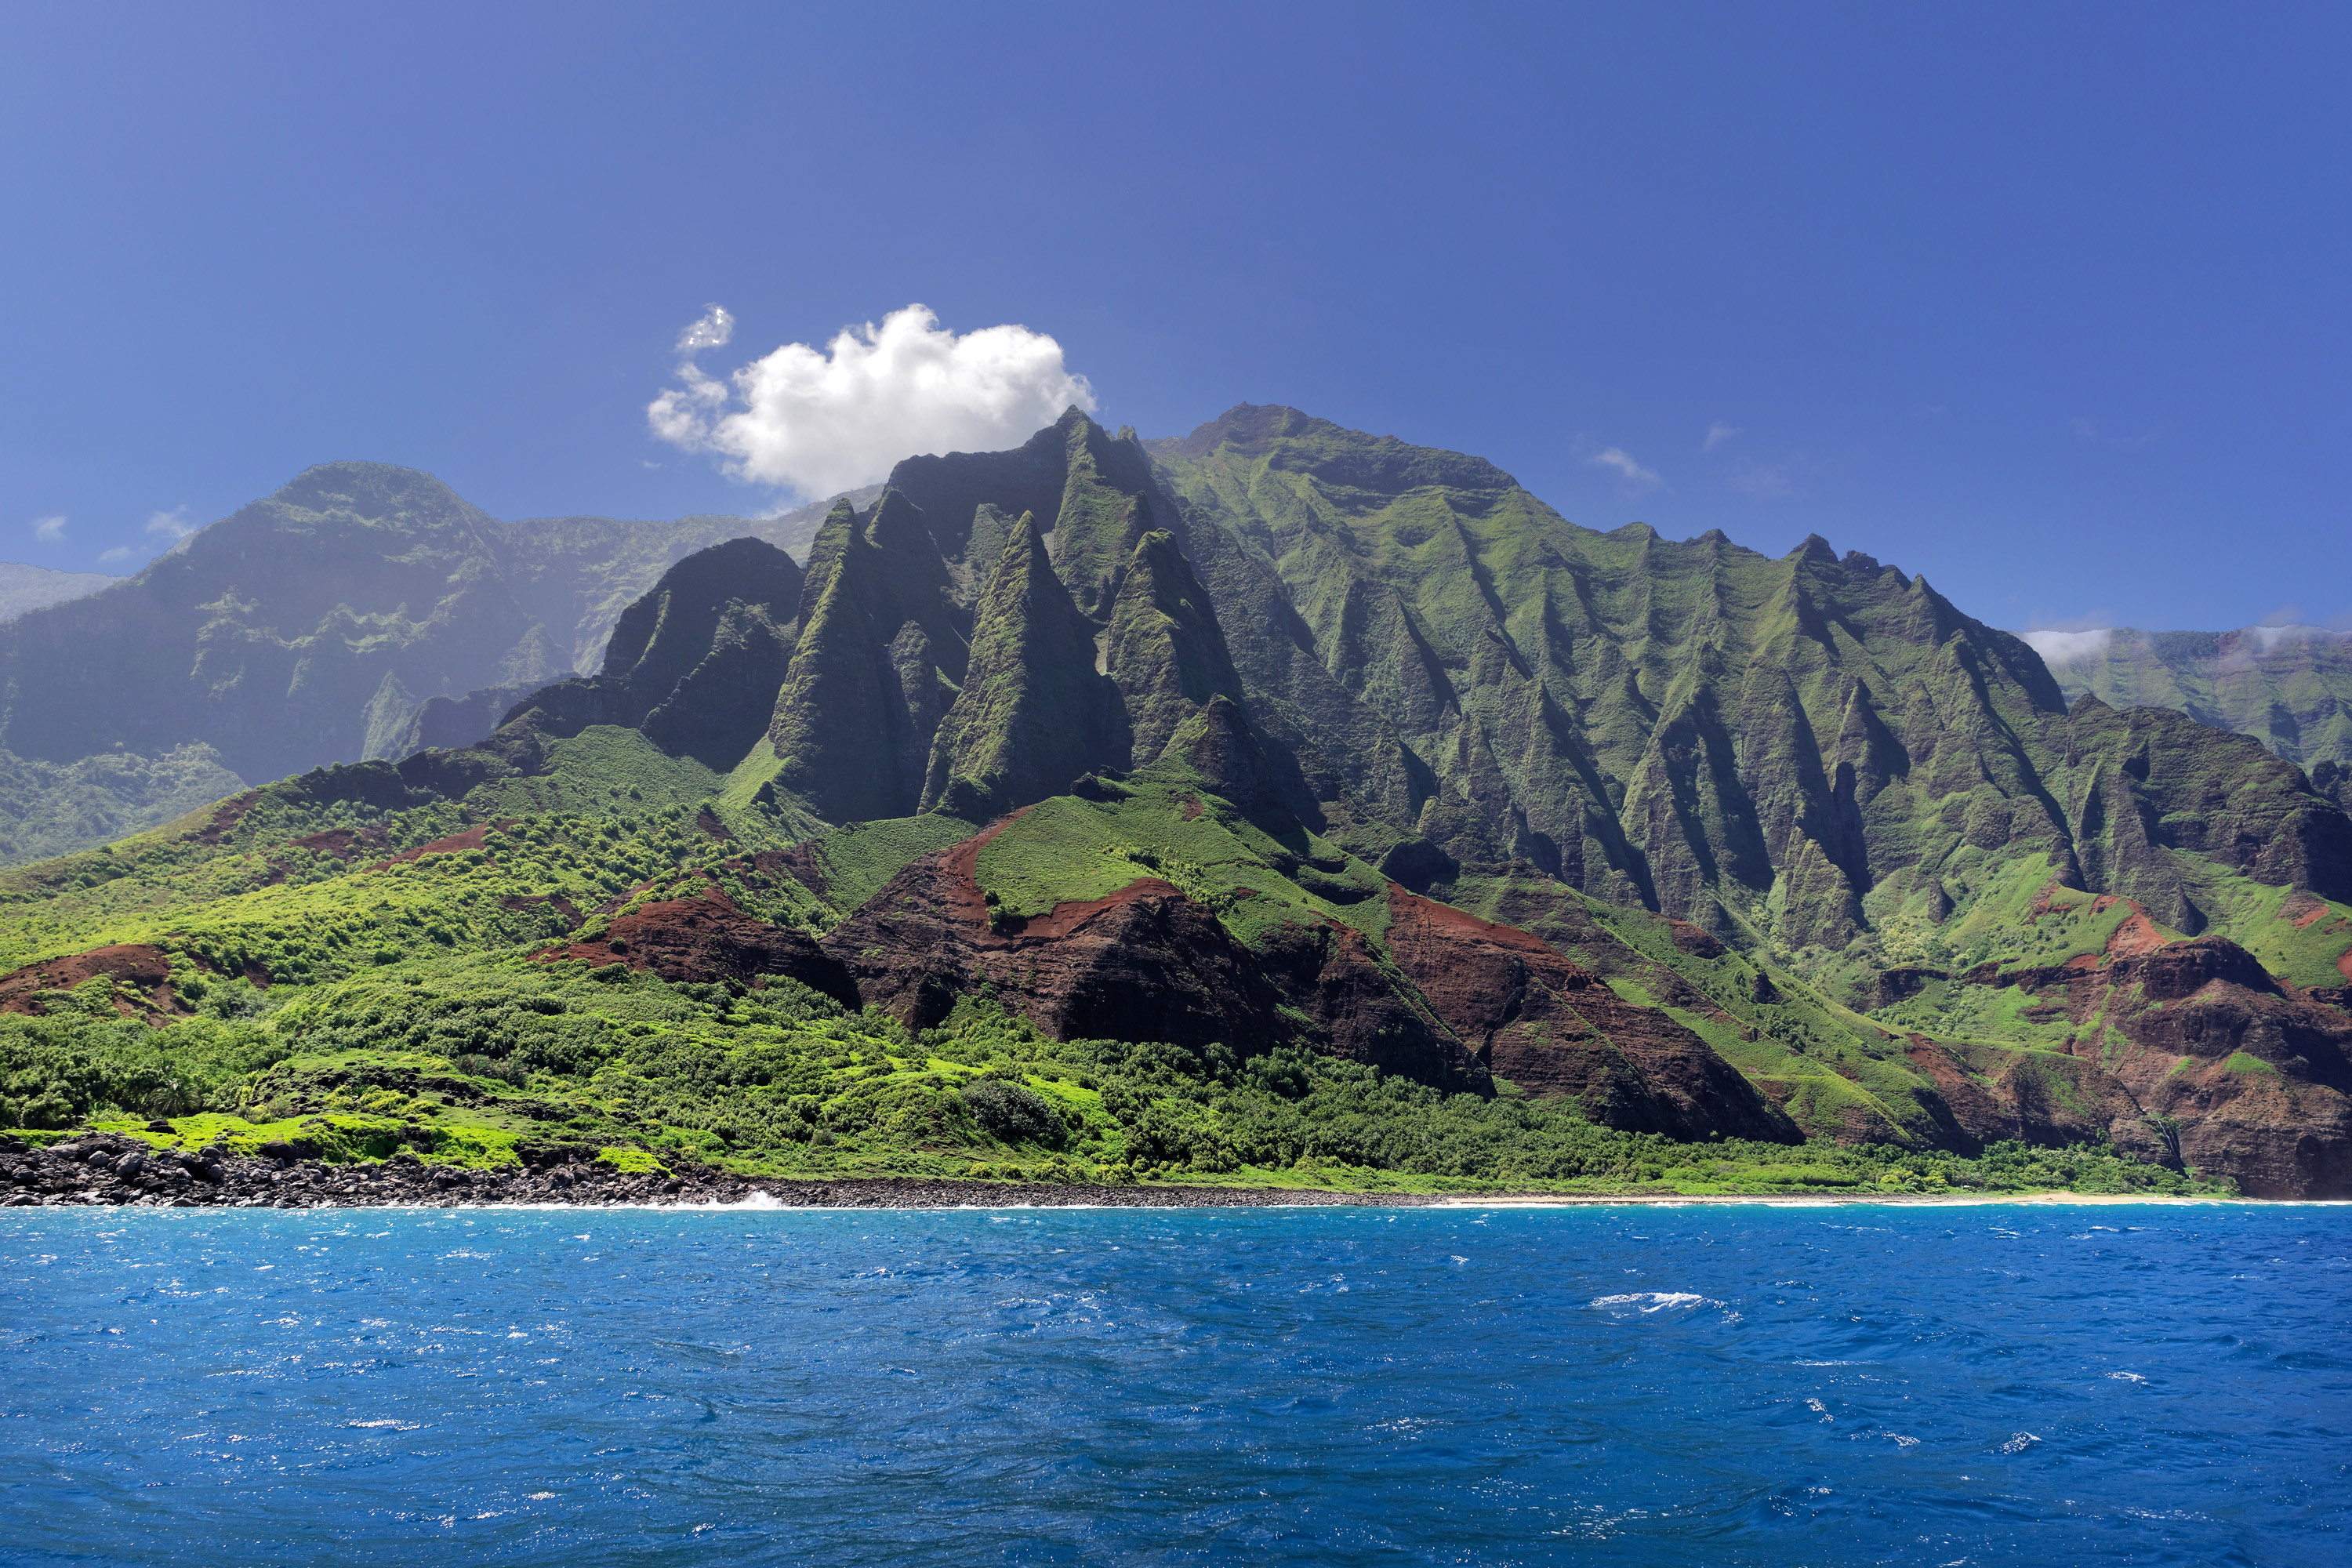 Napali coast, Kauai island, Hawaii by Marko Erman [3000 × 2000]